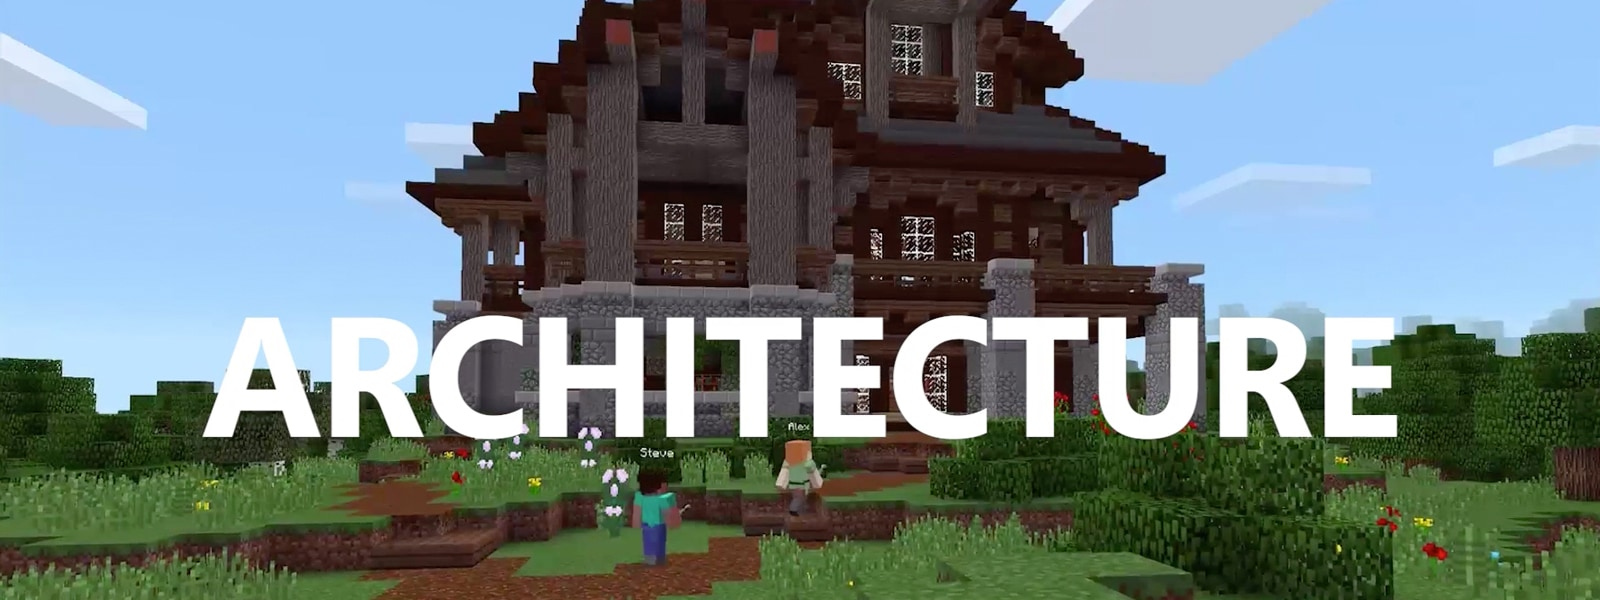 Windows PC Gaming Microsoft - Minecraft spielen download chip